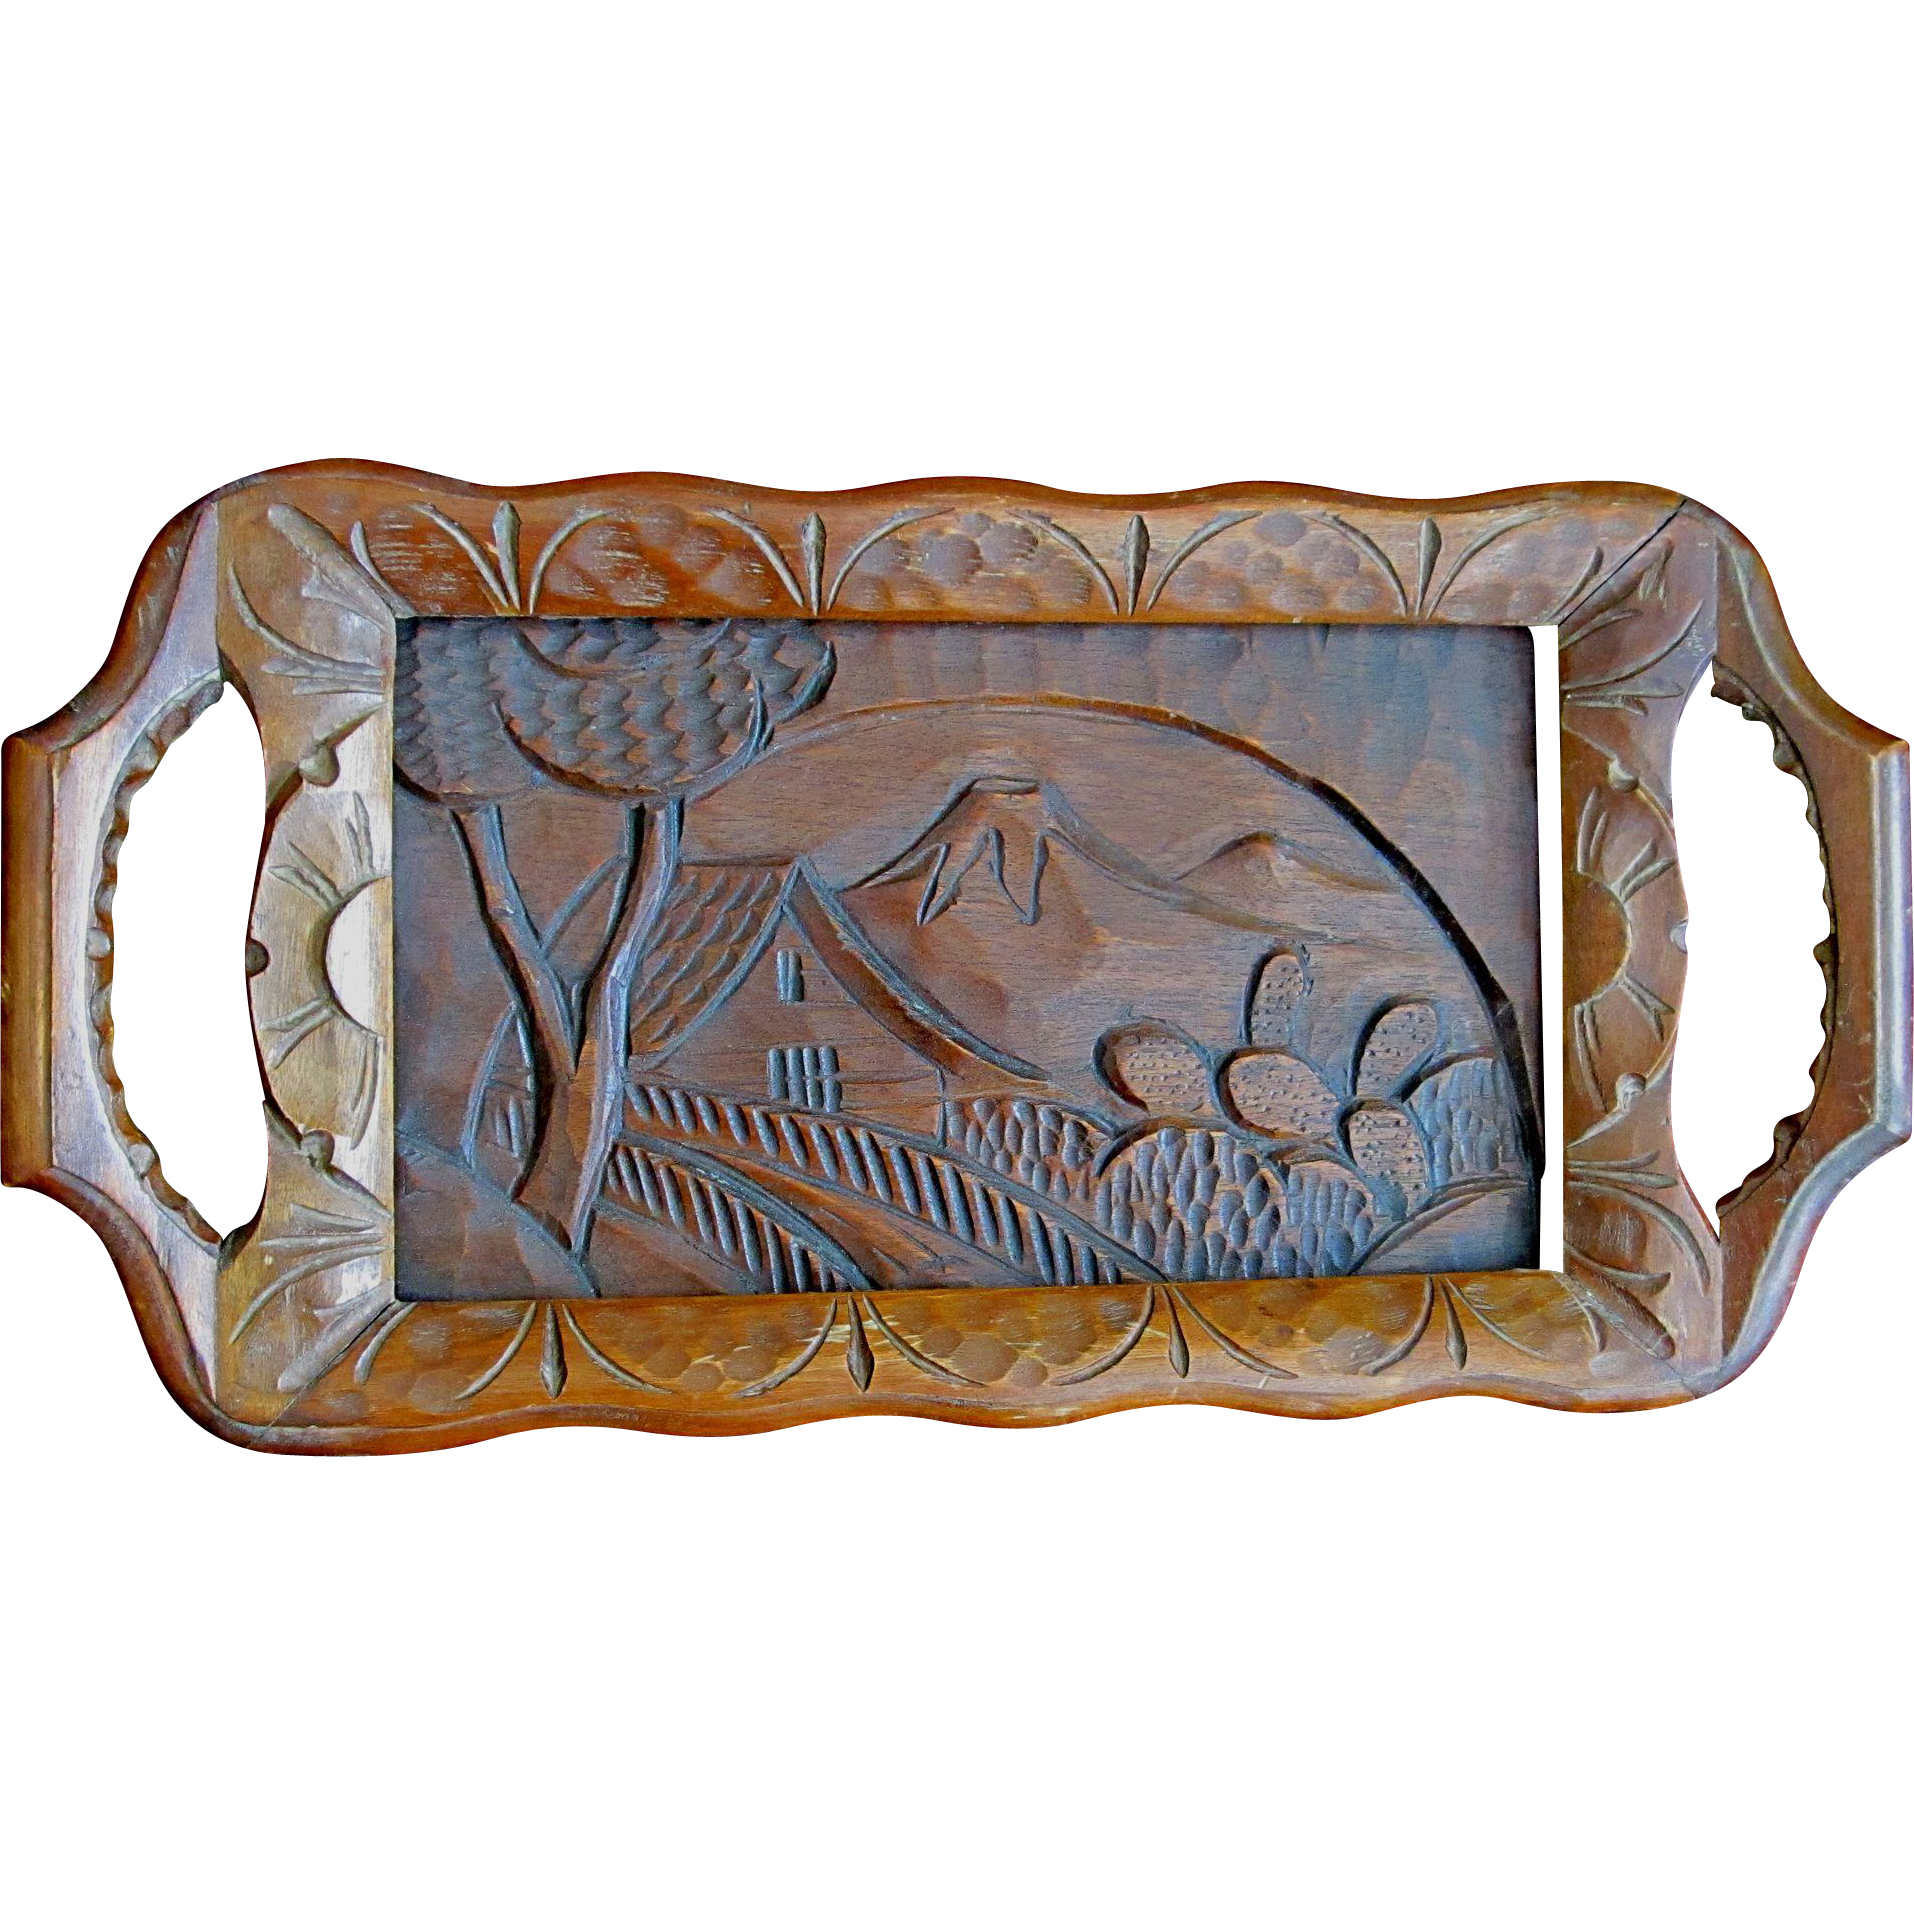 Vintage 50s Mexican Folk Art Wooden Tray Hand Carved Figural Volcano Cactus House Very RARE!